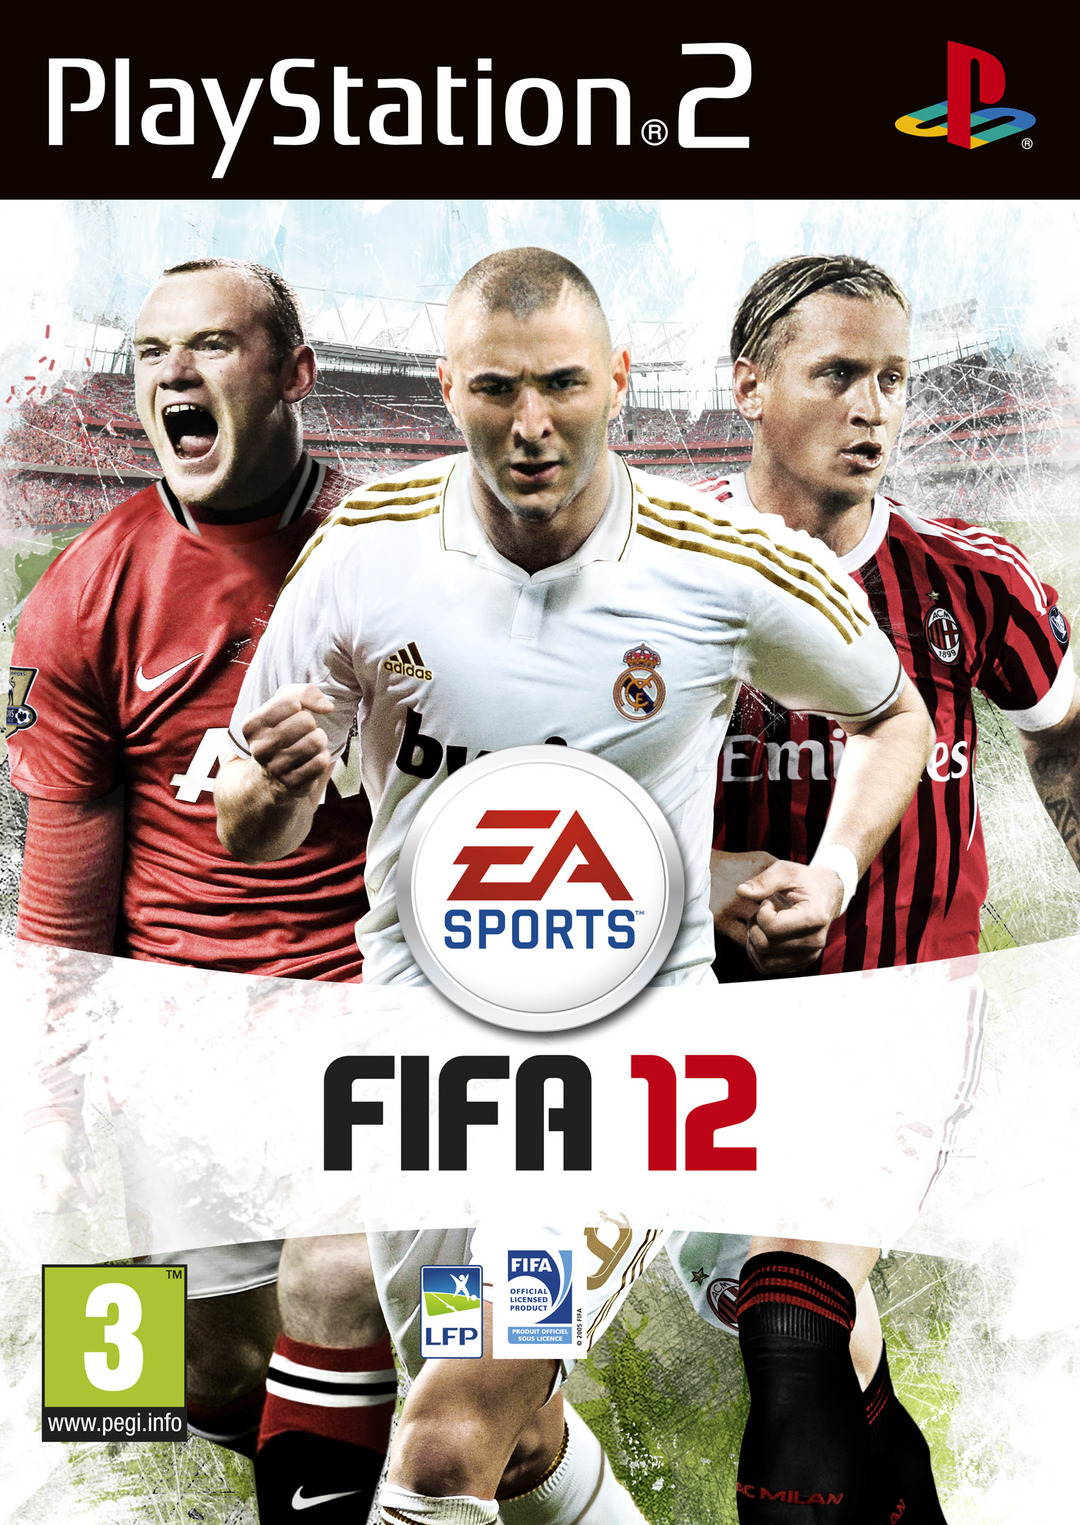 FIFA 12 PAL PS2DVD (exclue) [FS]